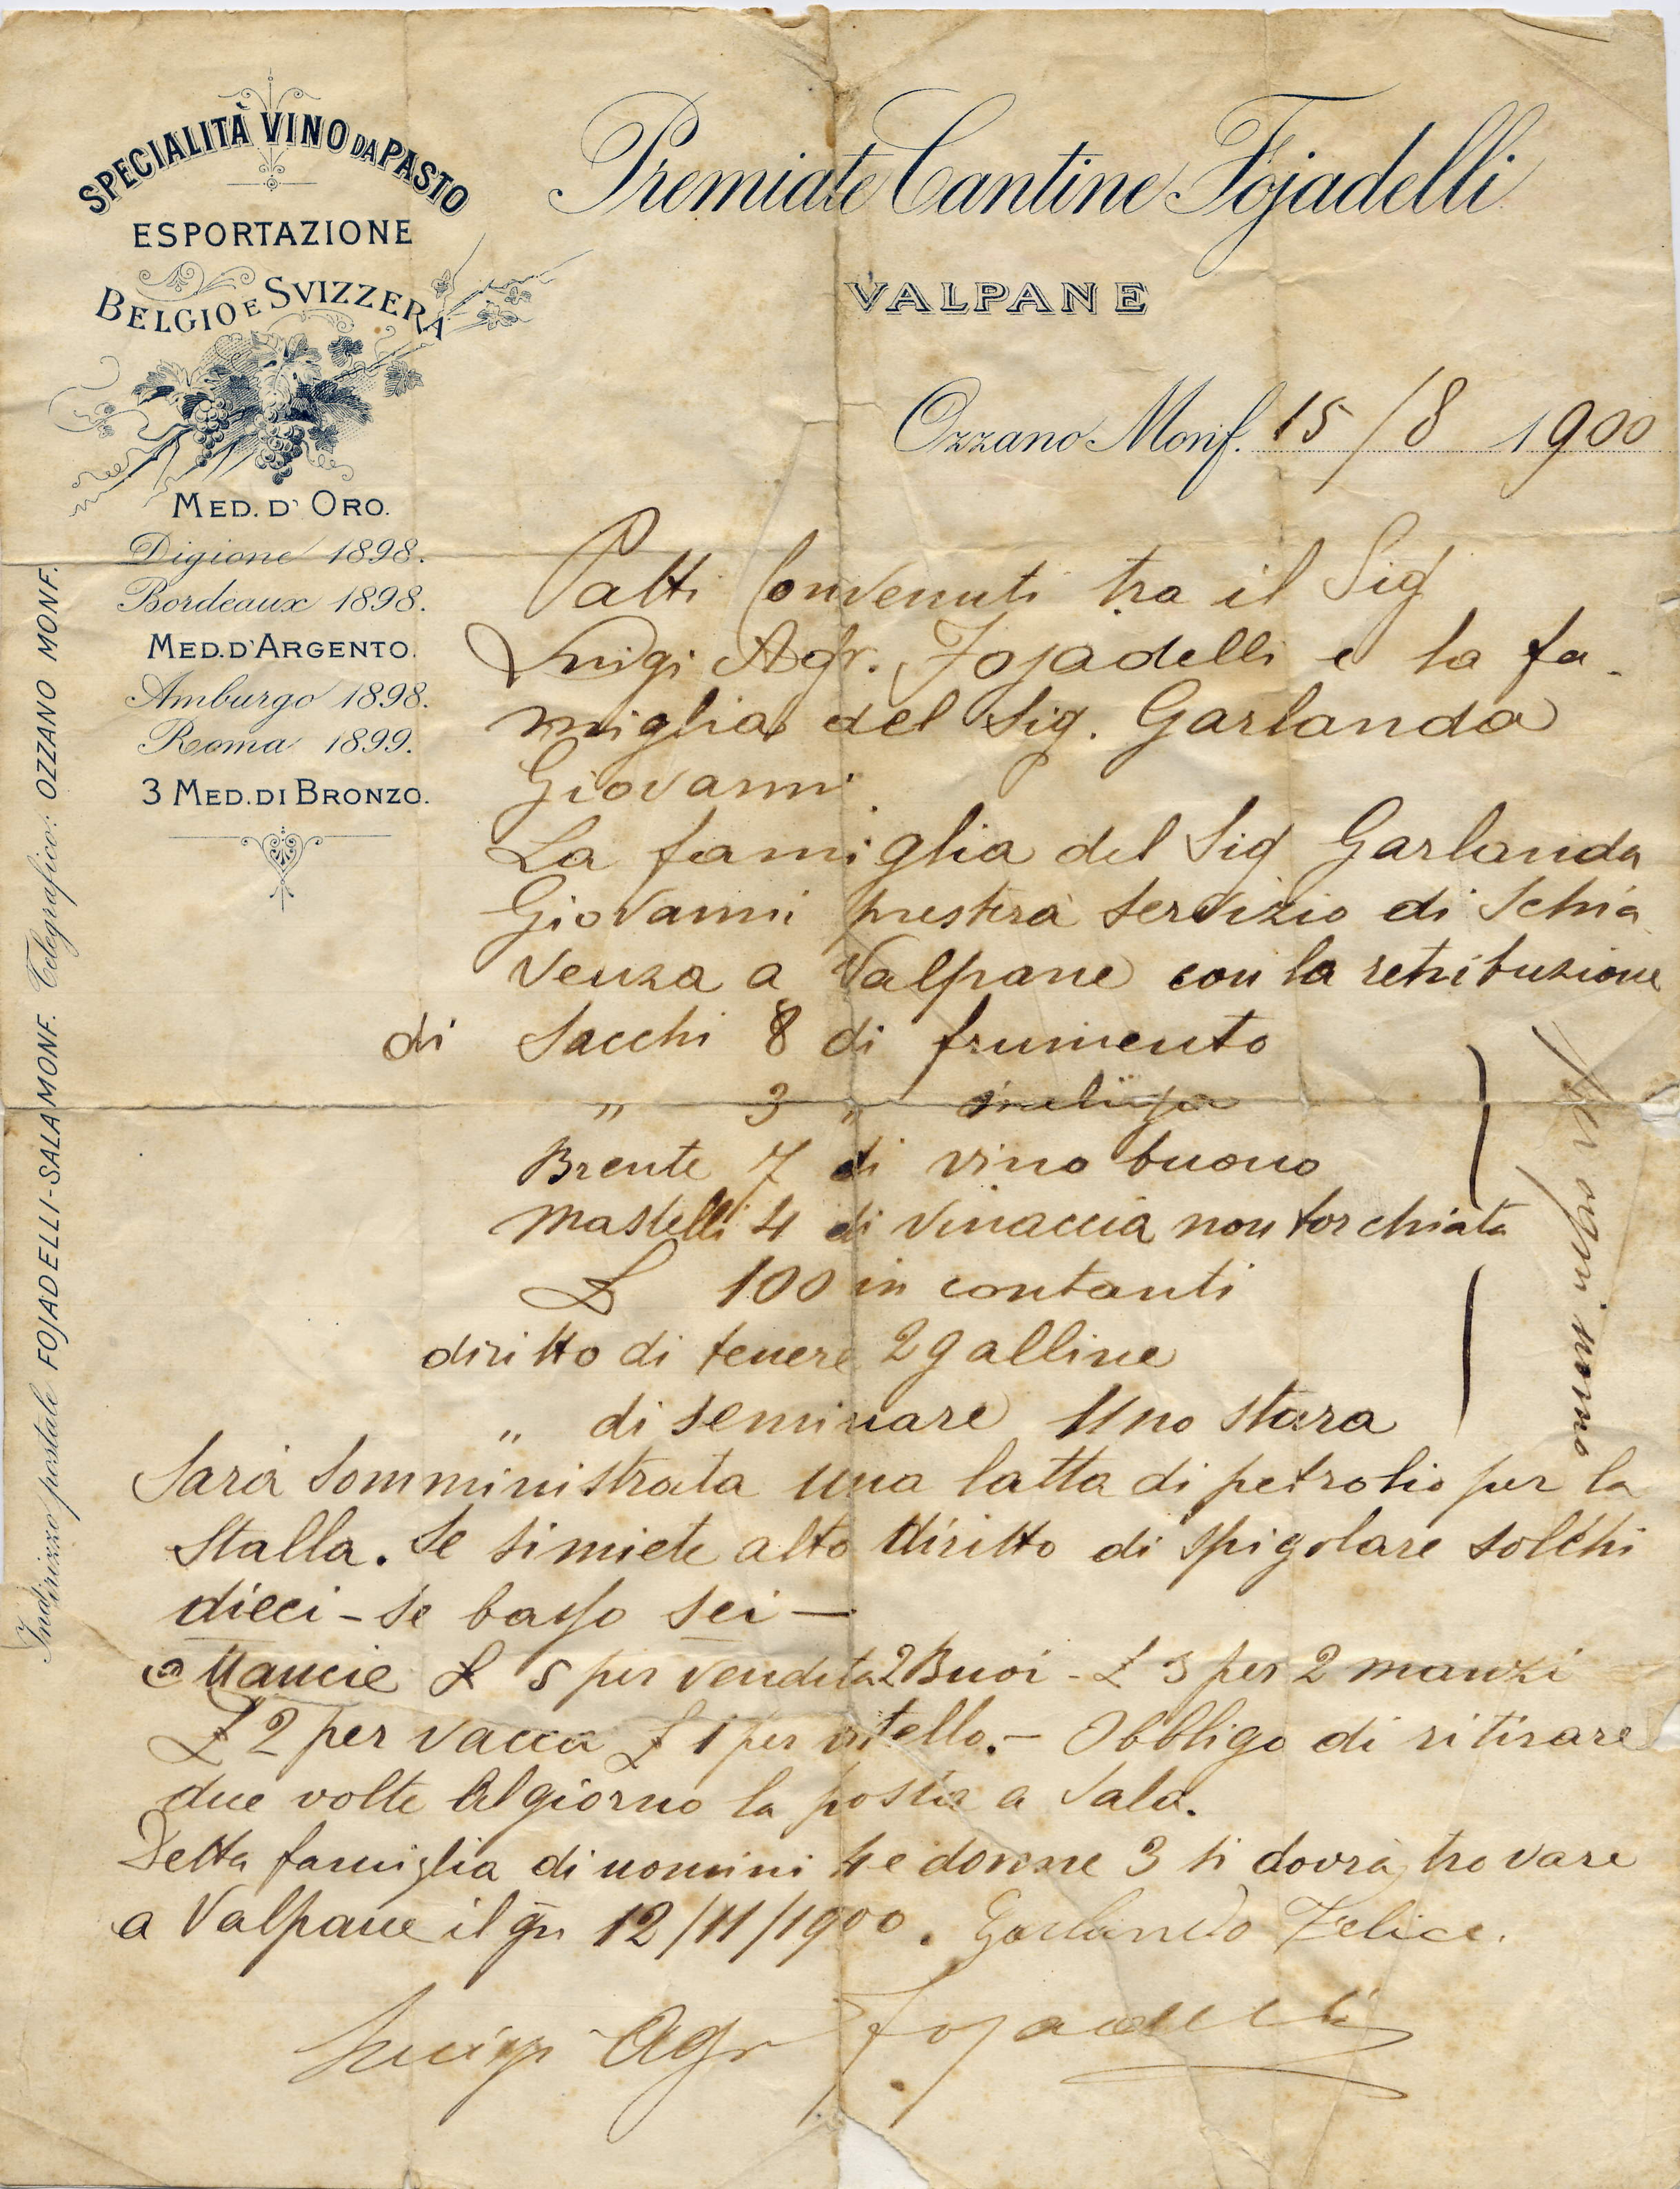 A contract redacted at Valpane in 1900